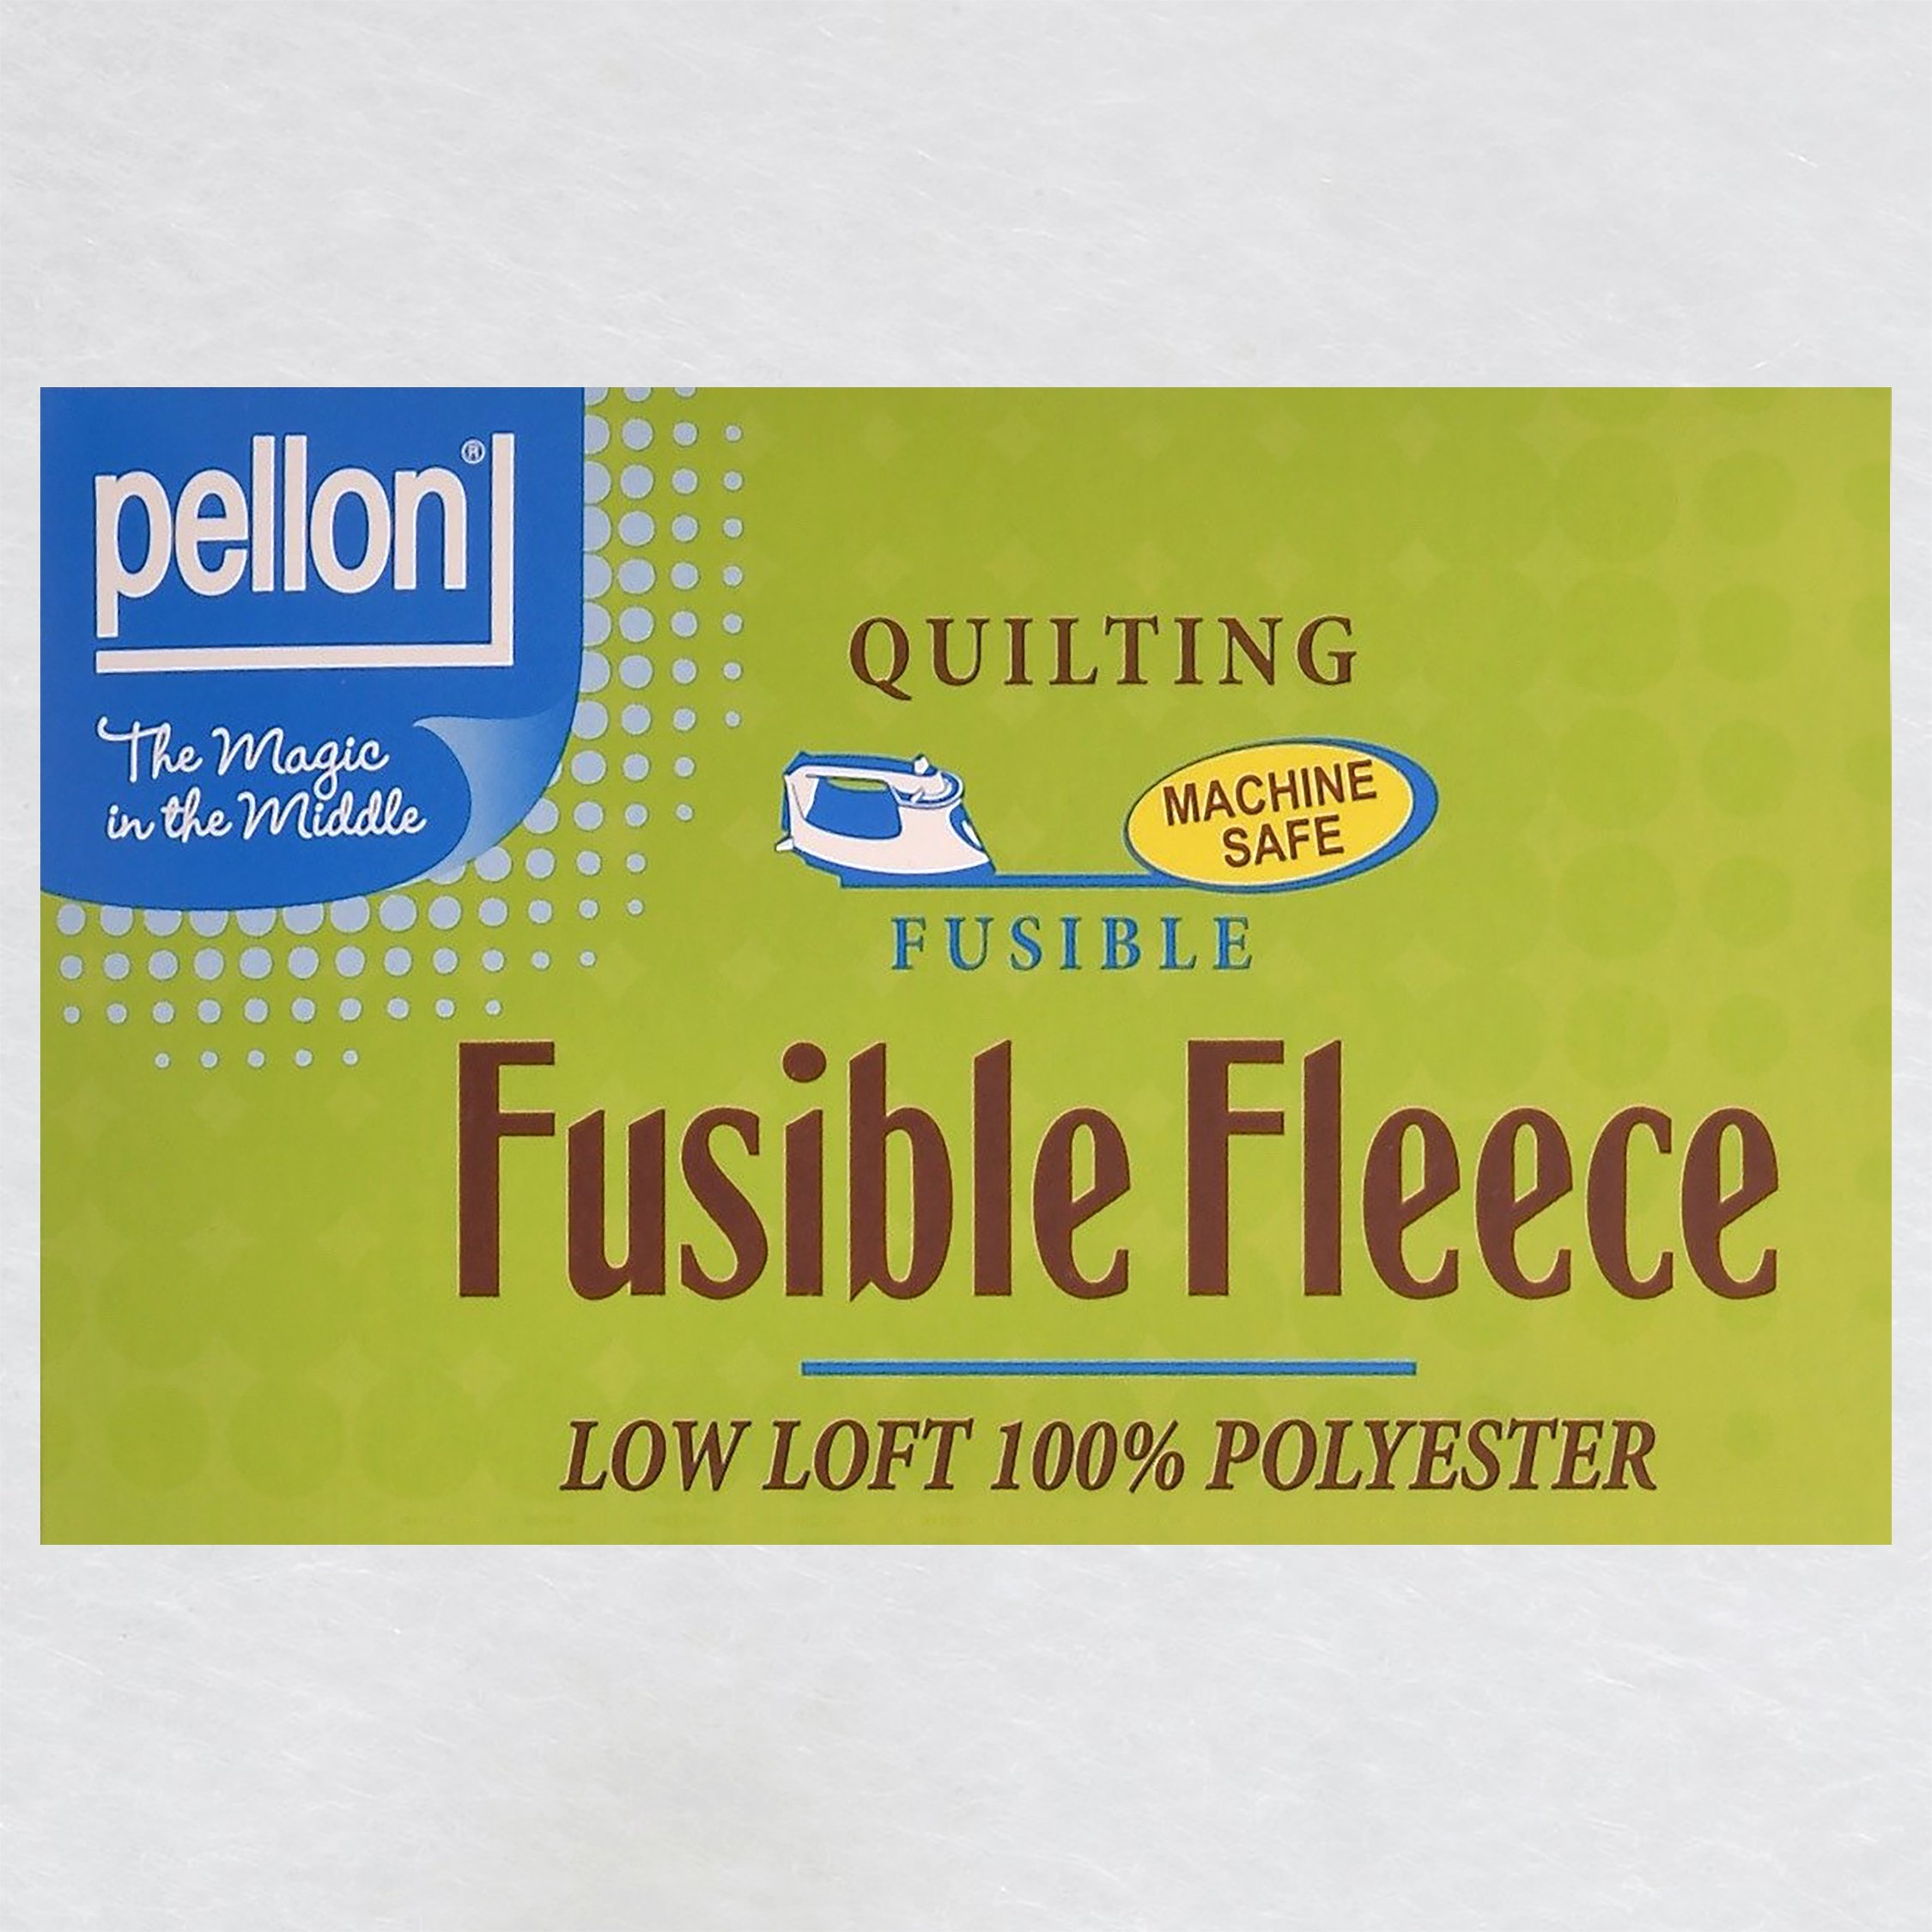 Pellon Fusible Fleece 987- Local Delivery or Pickup Only